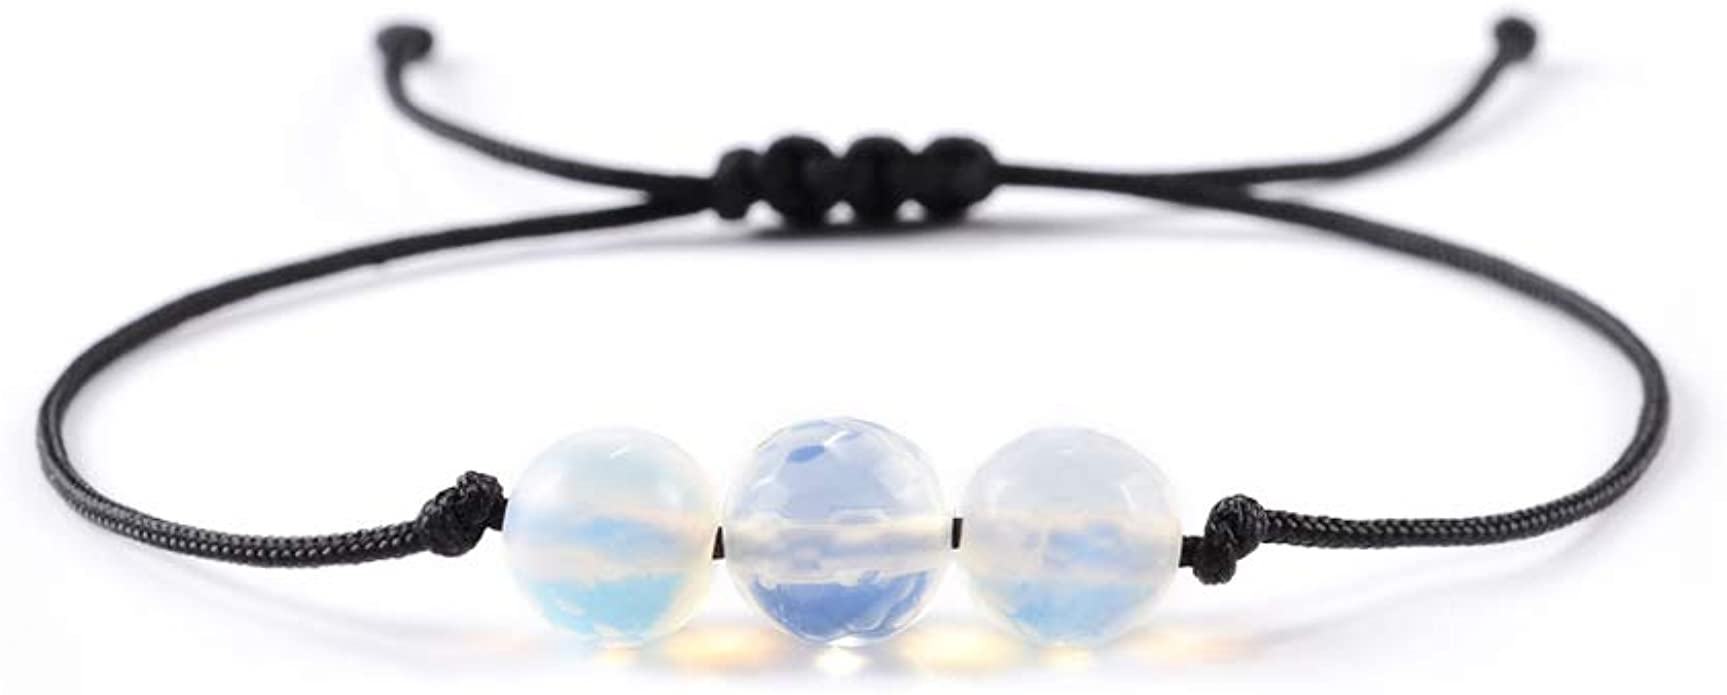 Sisters, Friends Distance Wish Bracelets Marble Cord Gift Black Couples